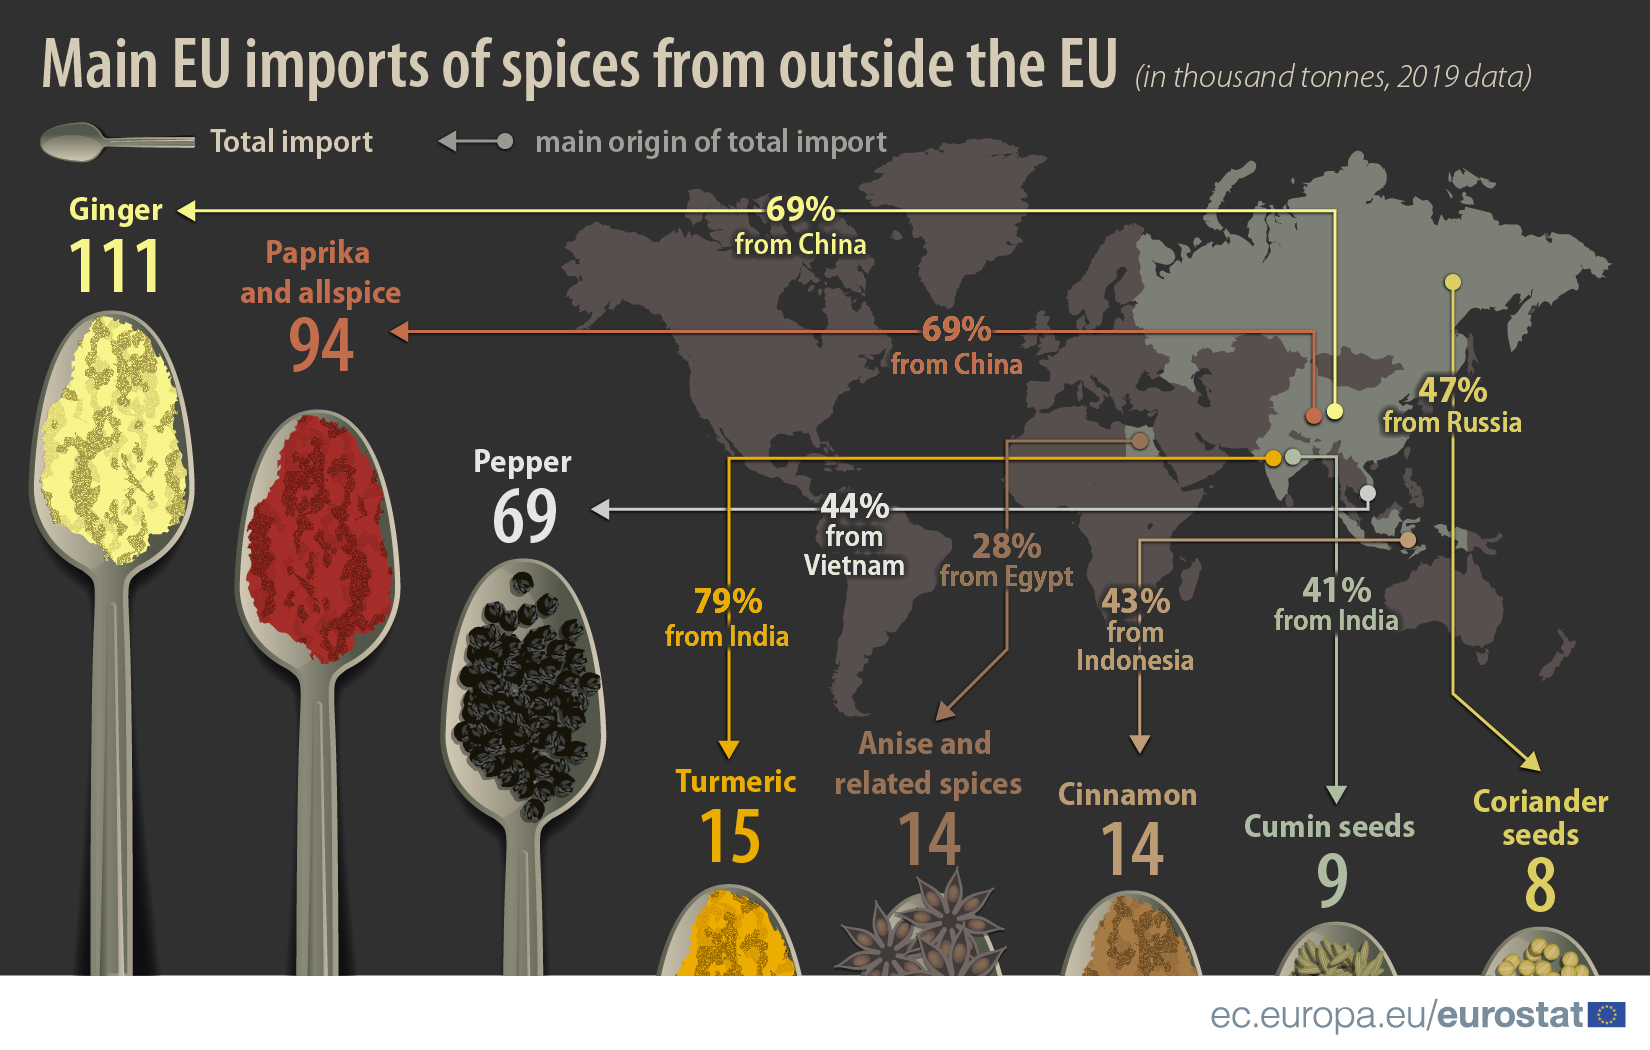 Main EU imports of spices from outside EU, 2019